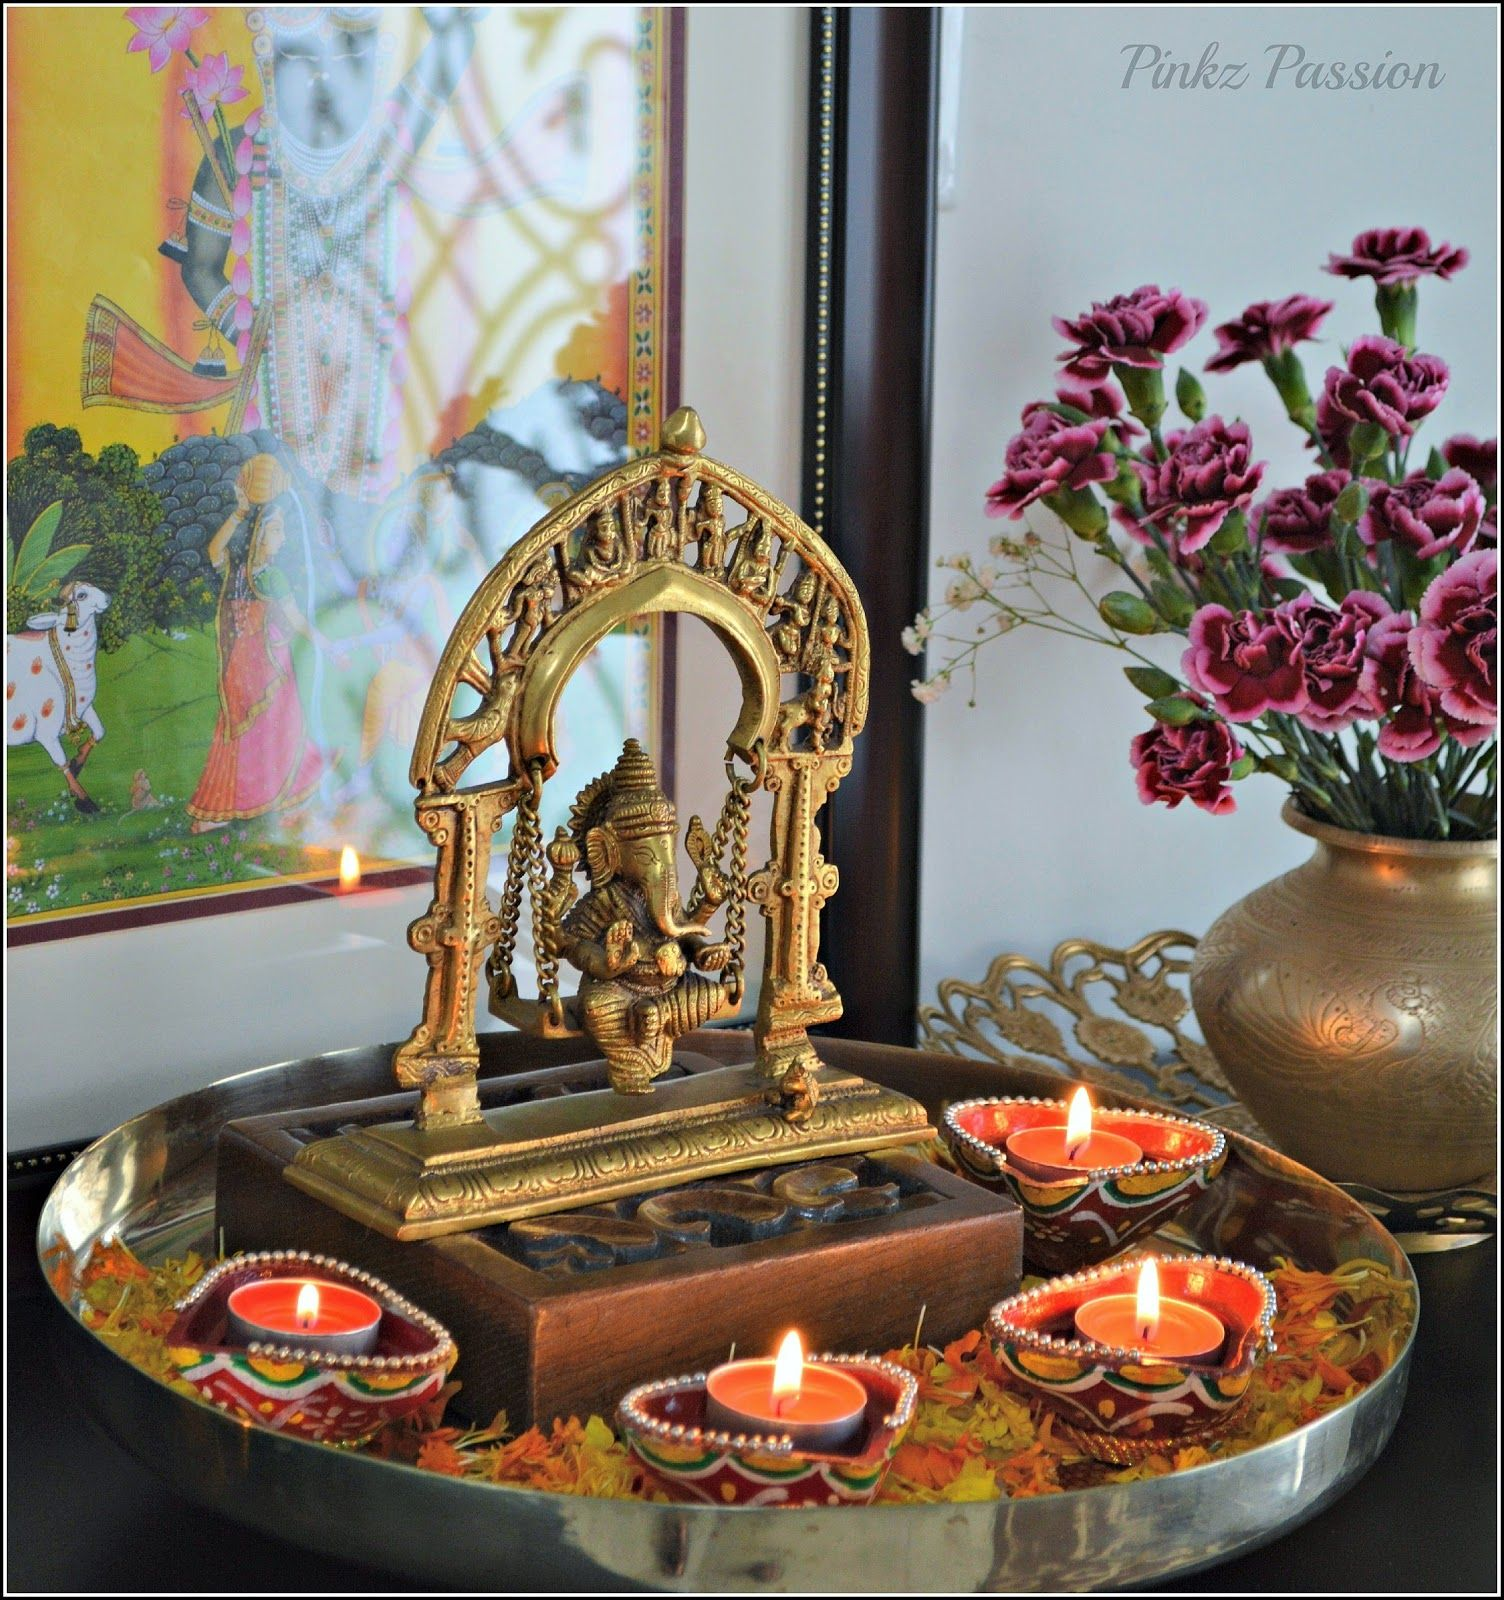 Pinkz passion festival of lights diwali decor 1 ideas for the house pinterest diwali Home decorations for diwali